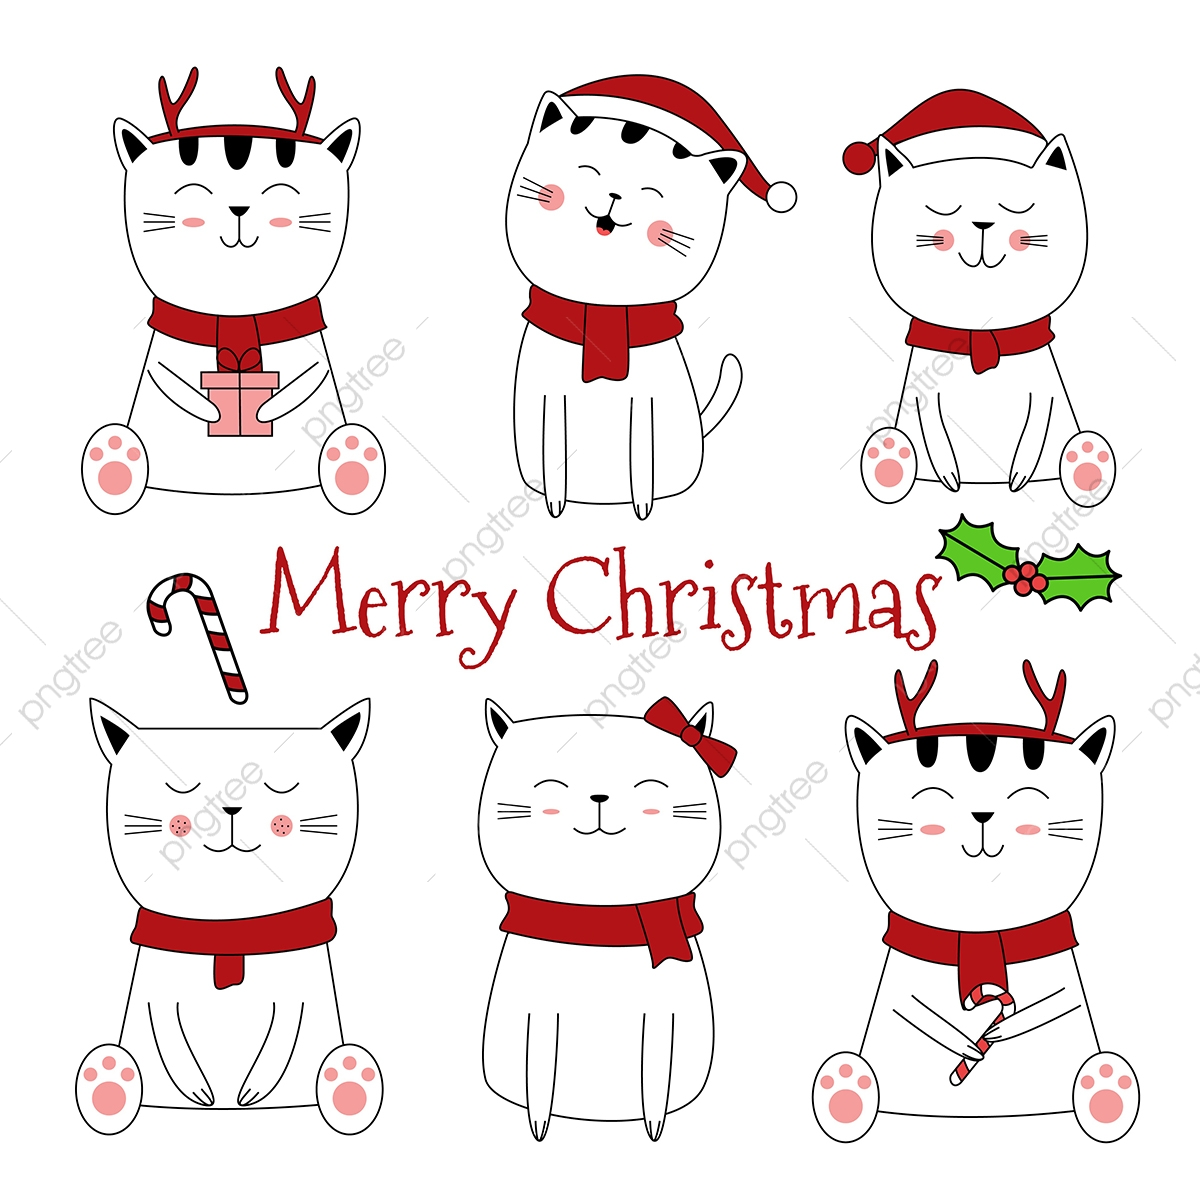 Cute Cat Christmas Design Vector Background Cat Clipart Christmas Cat Png And Vector With Transparent Background For Free Download